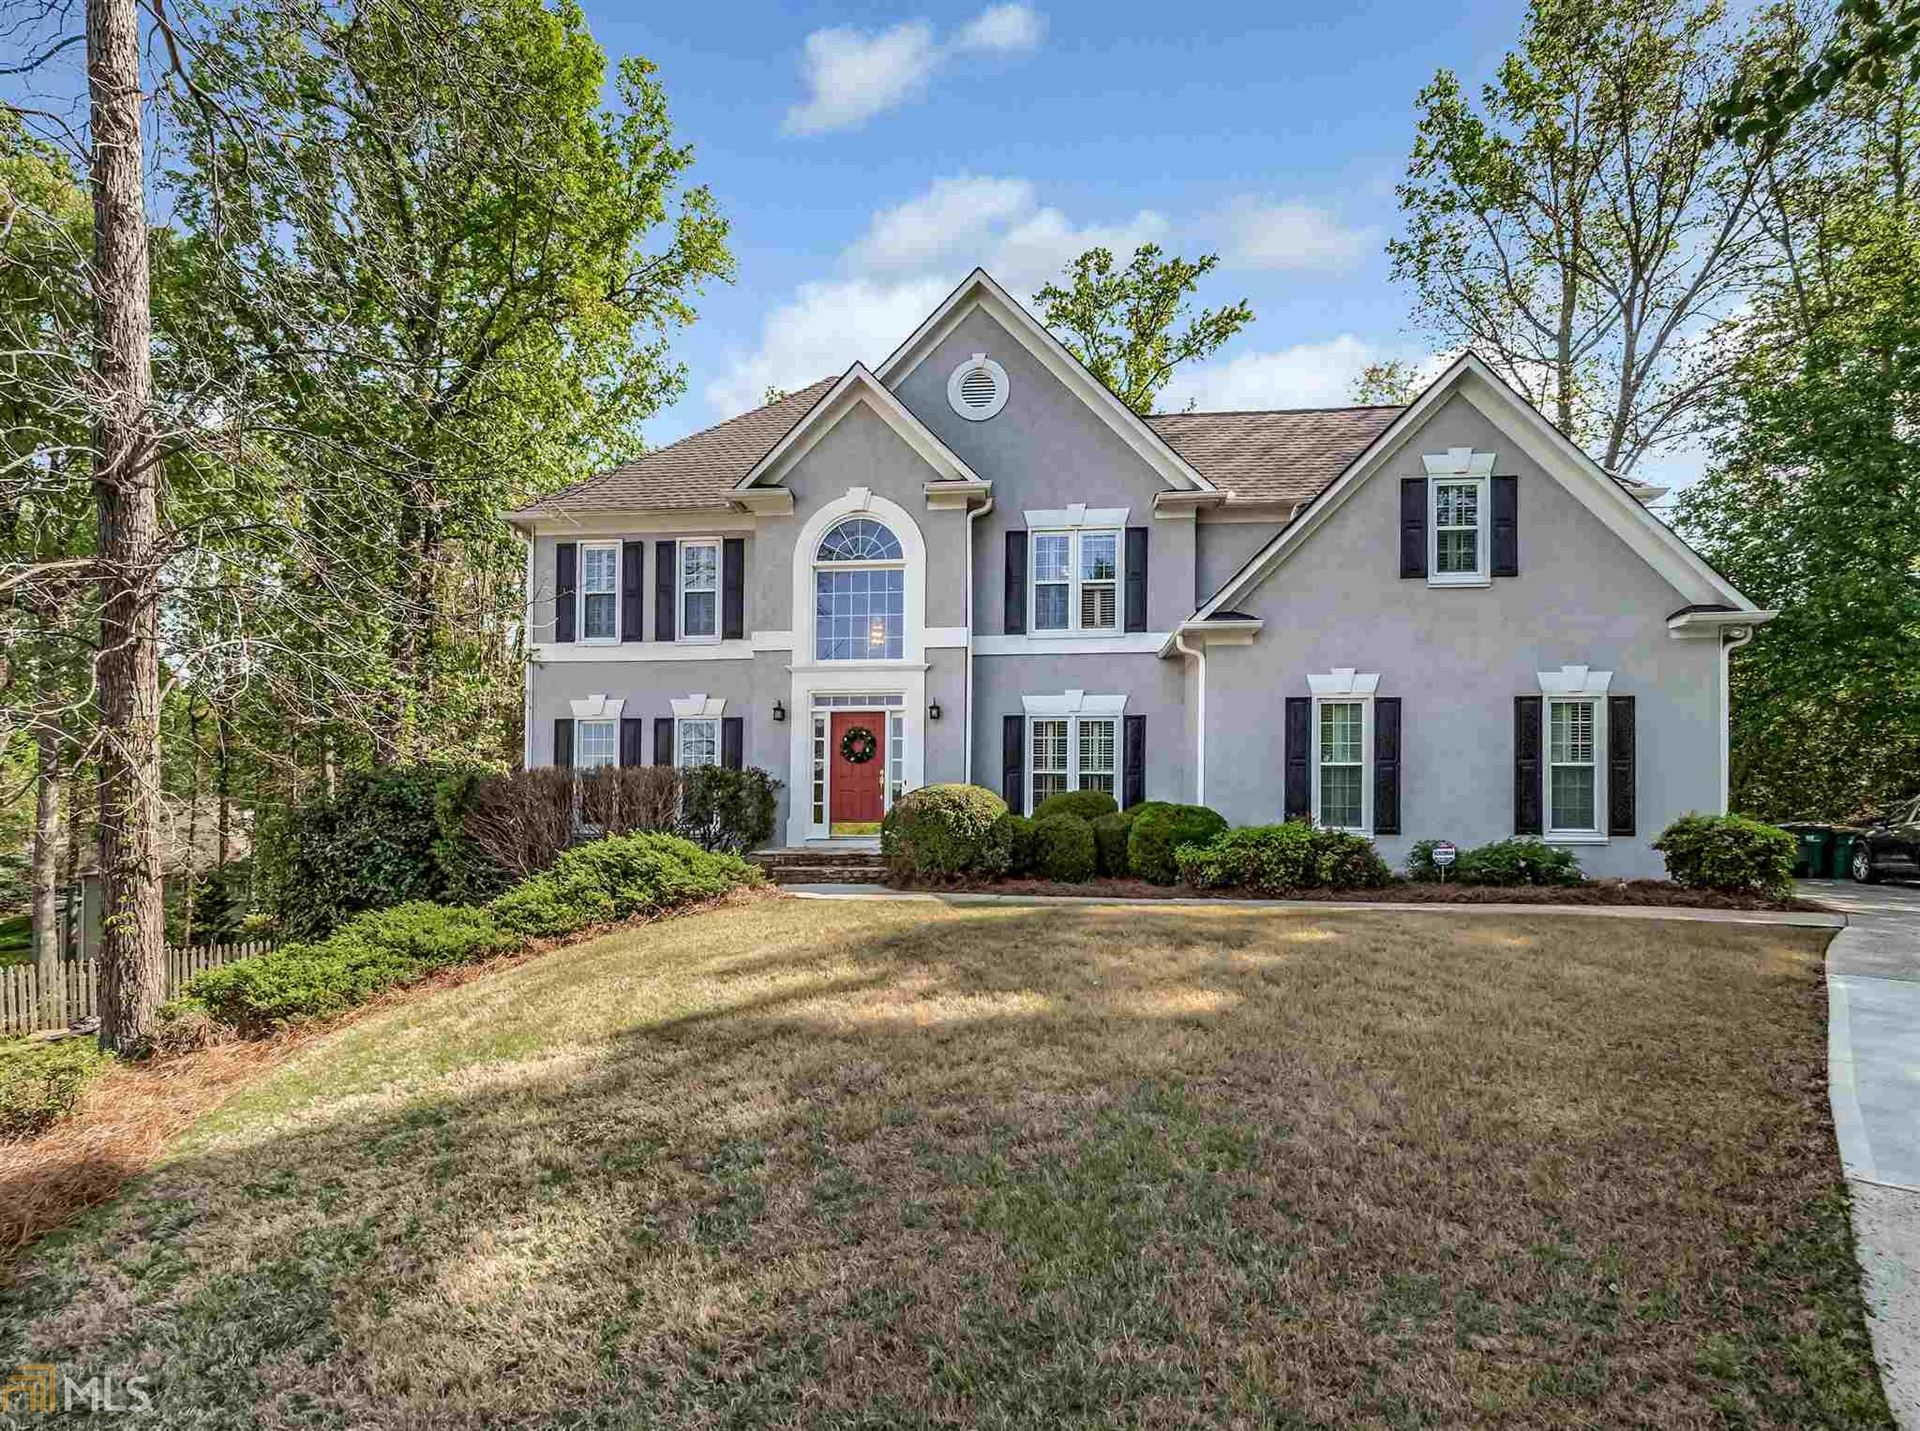 670 Evening Pine Ln, Alpharetta, GA 30005 - #: 8961525